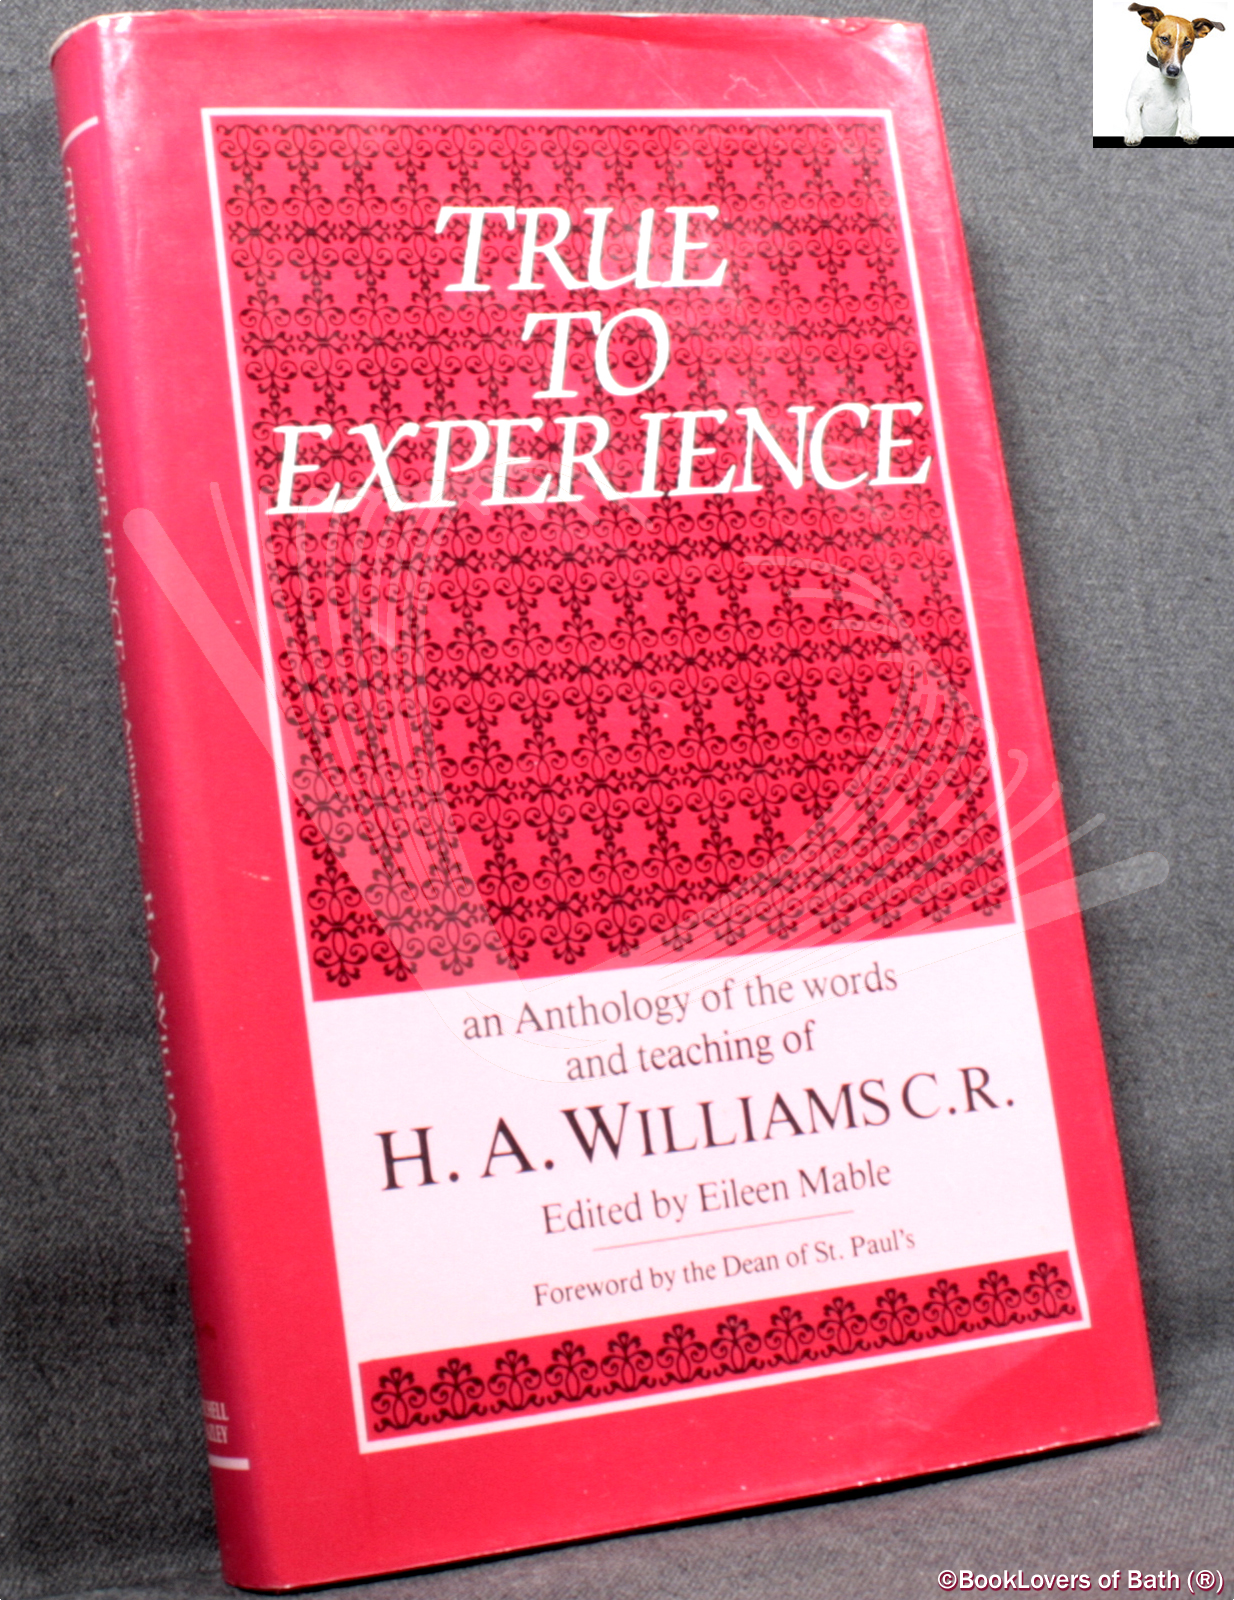 True to Experience: An Anthology of the Words and Teaching of H. A. Williams - Edited by Eileen Mable